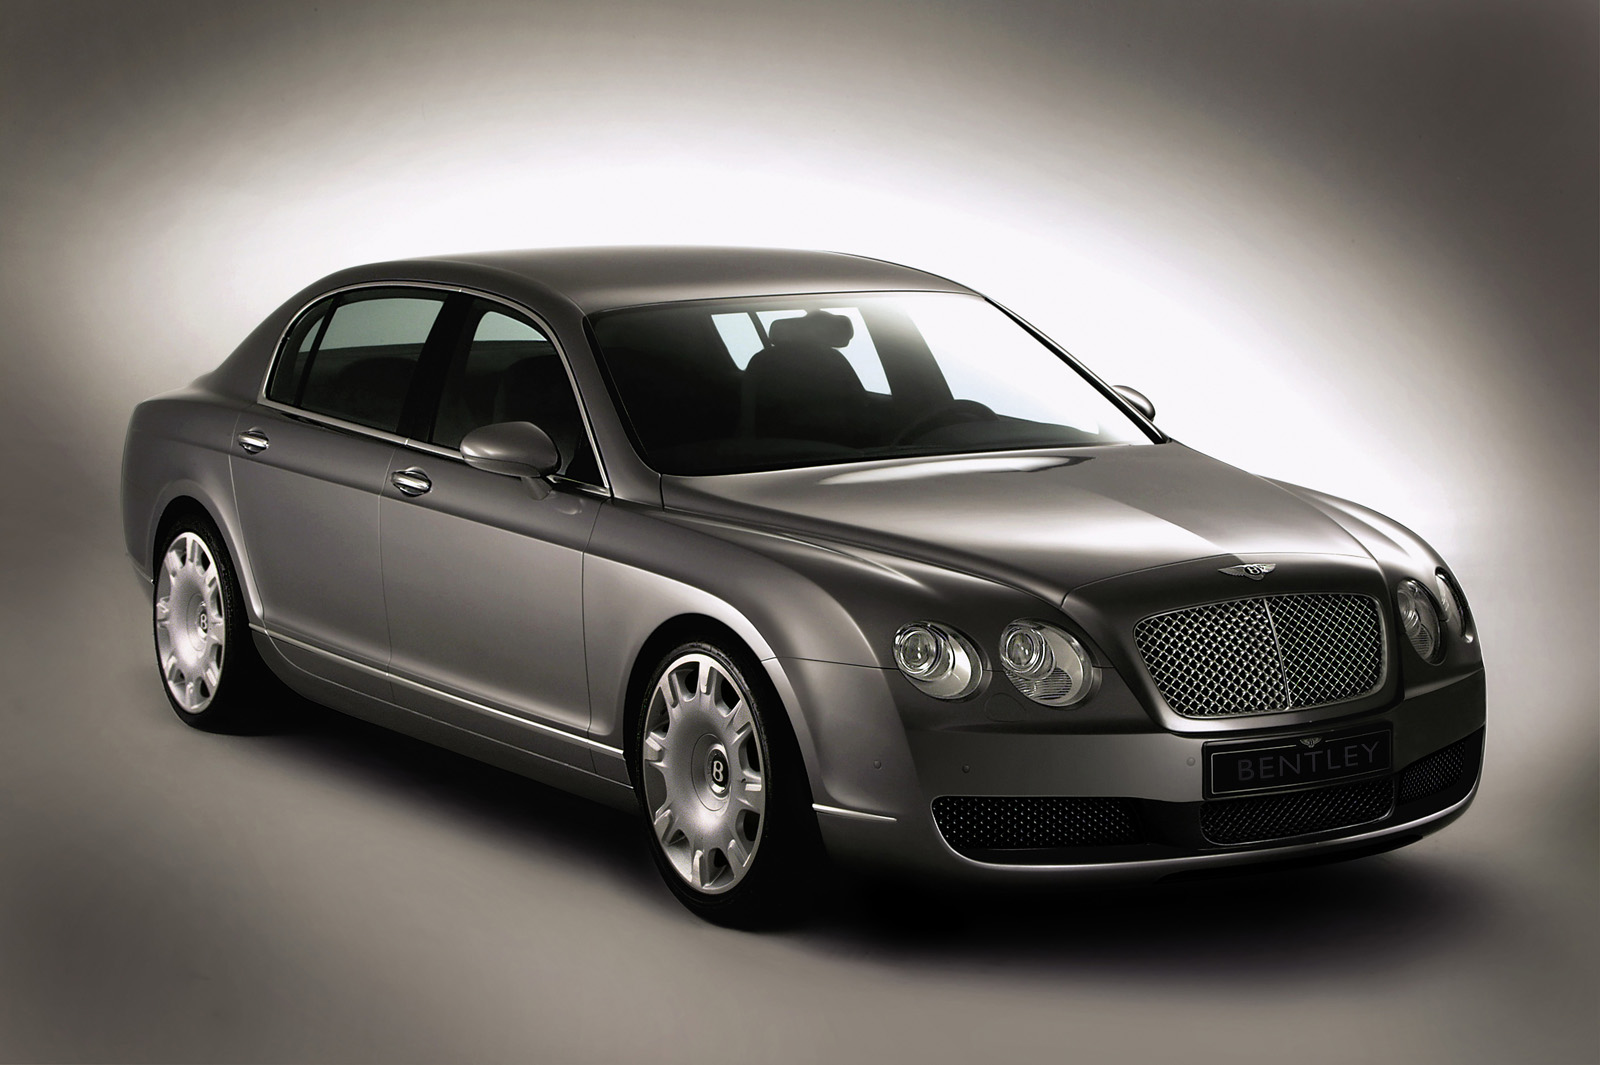 Bentley-Continental-Flying-Spur-Future-cars-model-wallpaper-wp422690-1